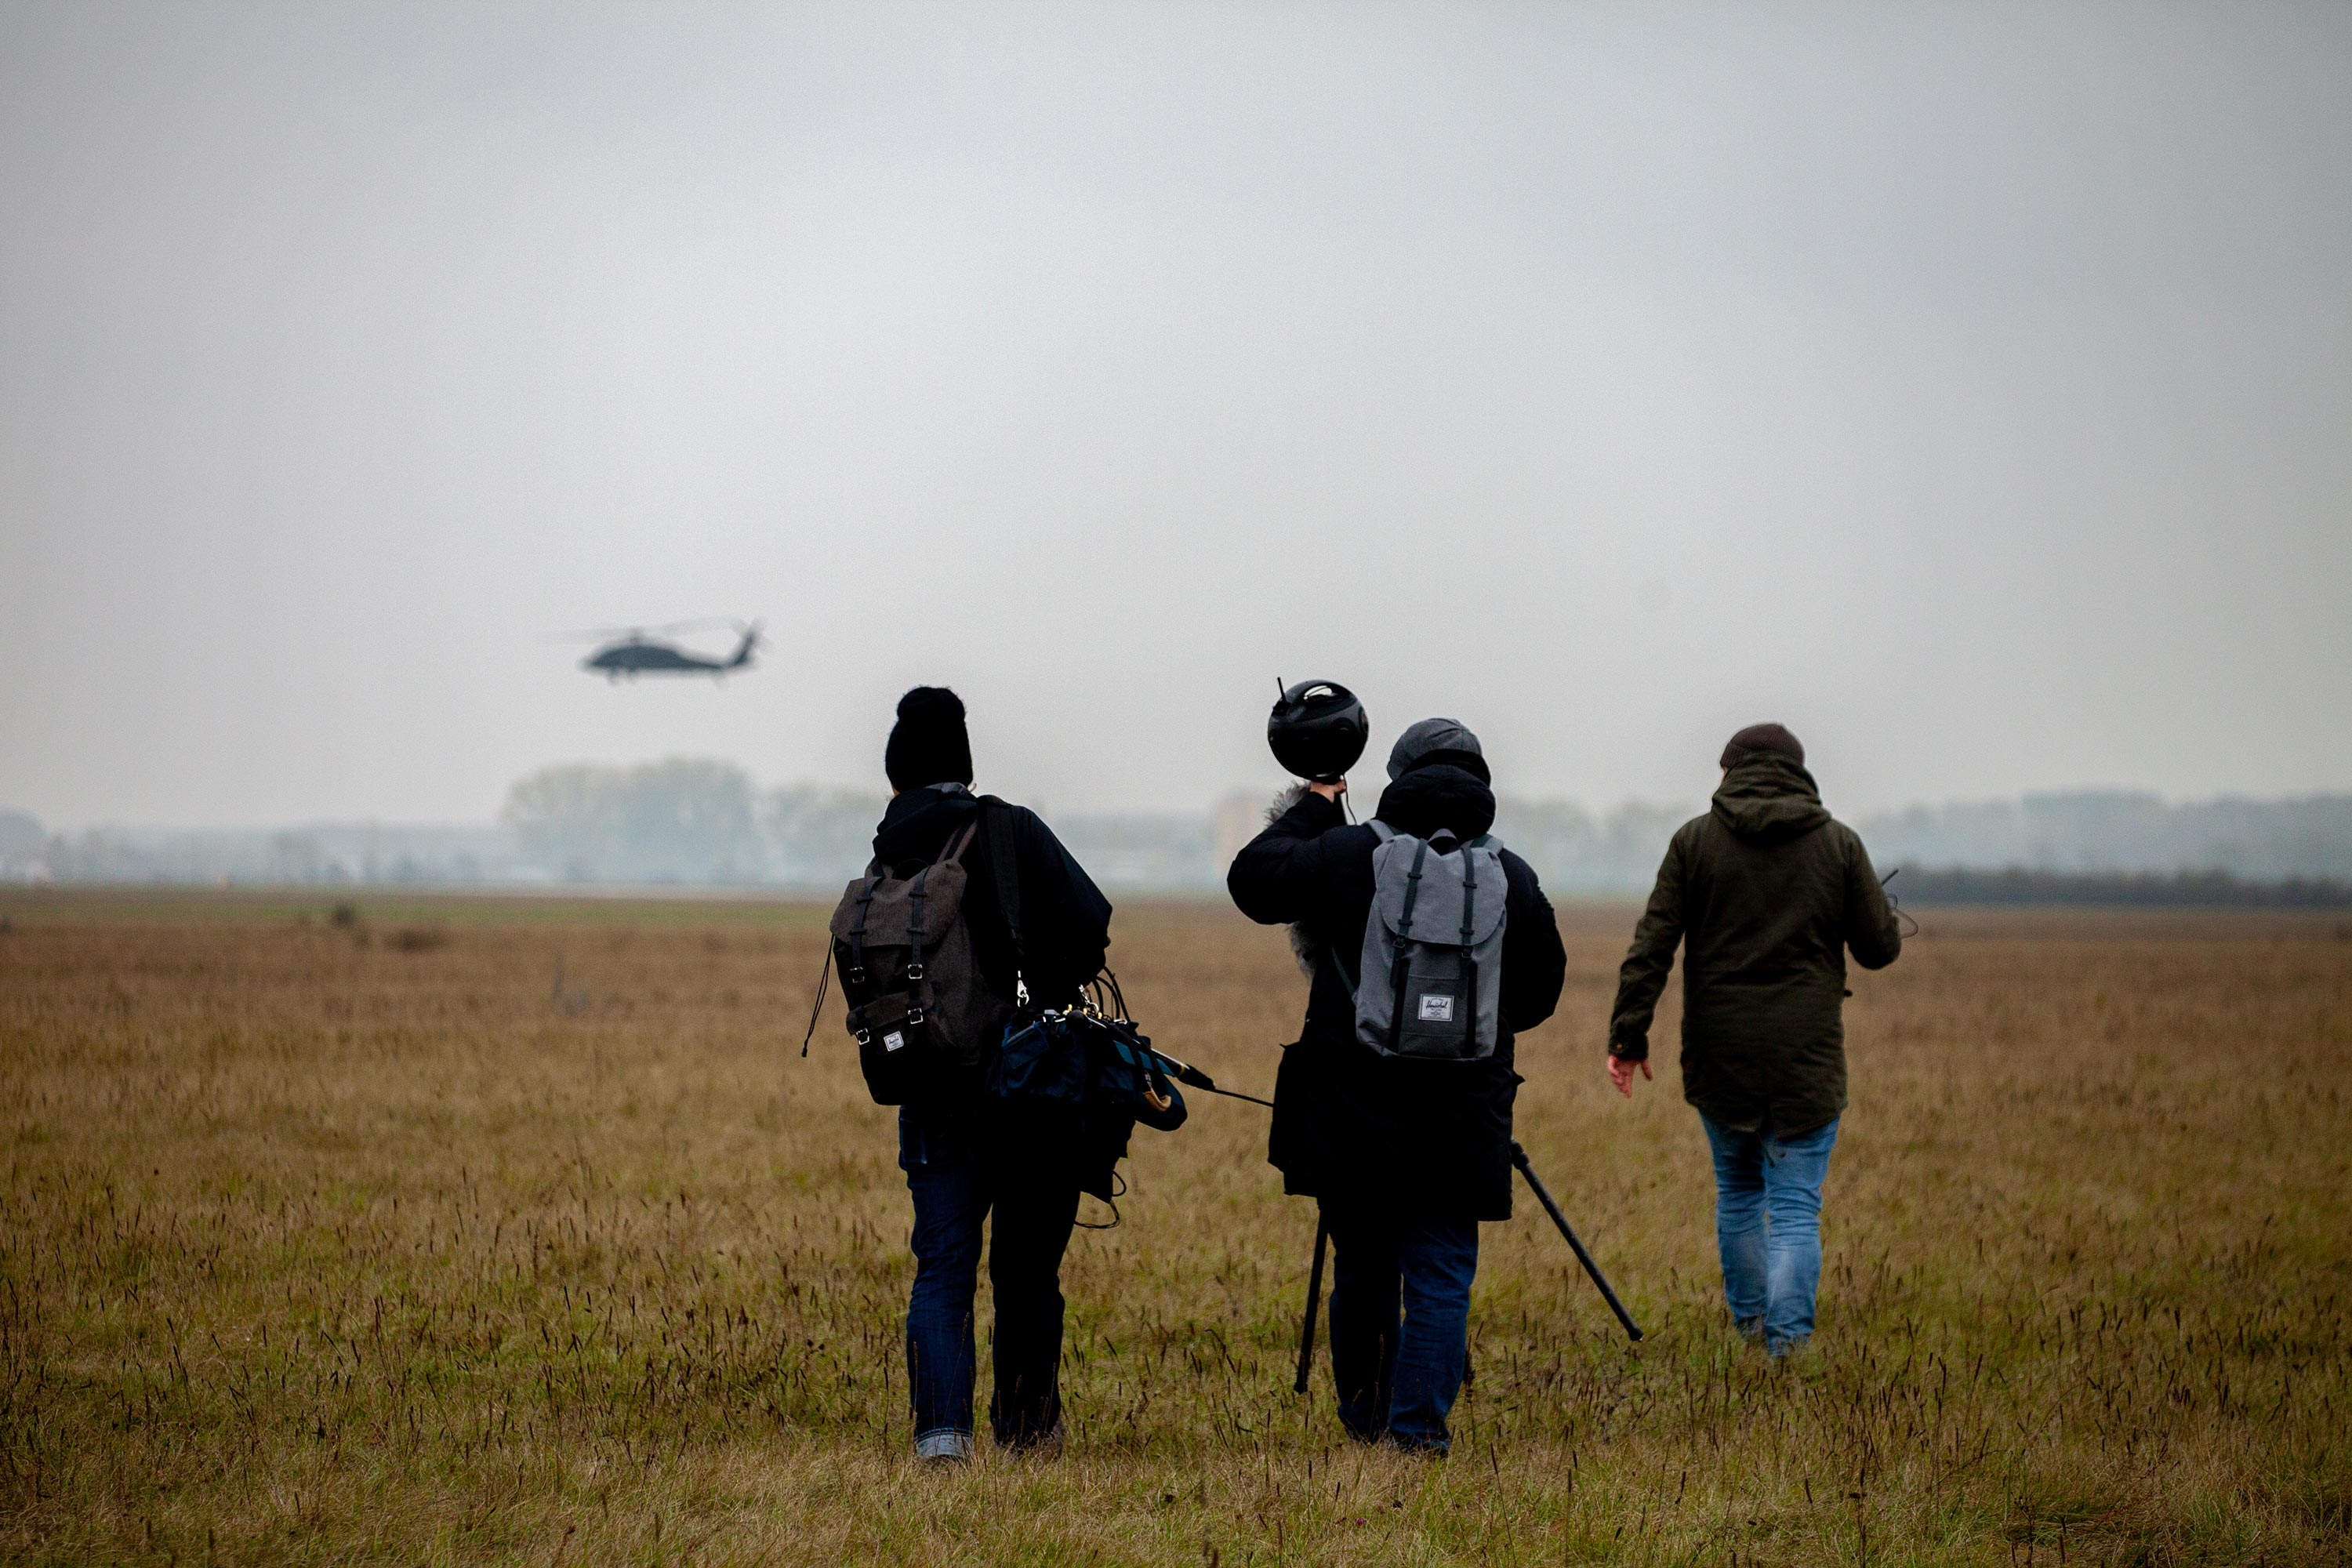 360 video film crew walking towards a Black Hawk helicopter while carrying an Insta360 Titan 360 video camera